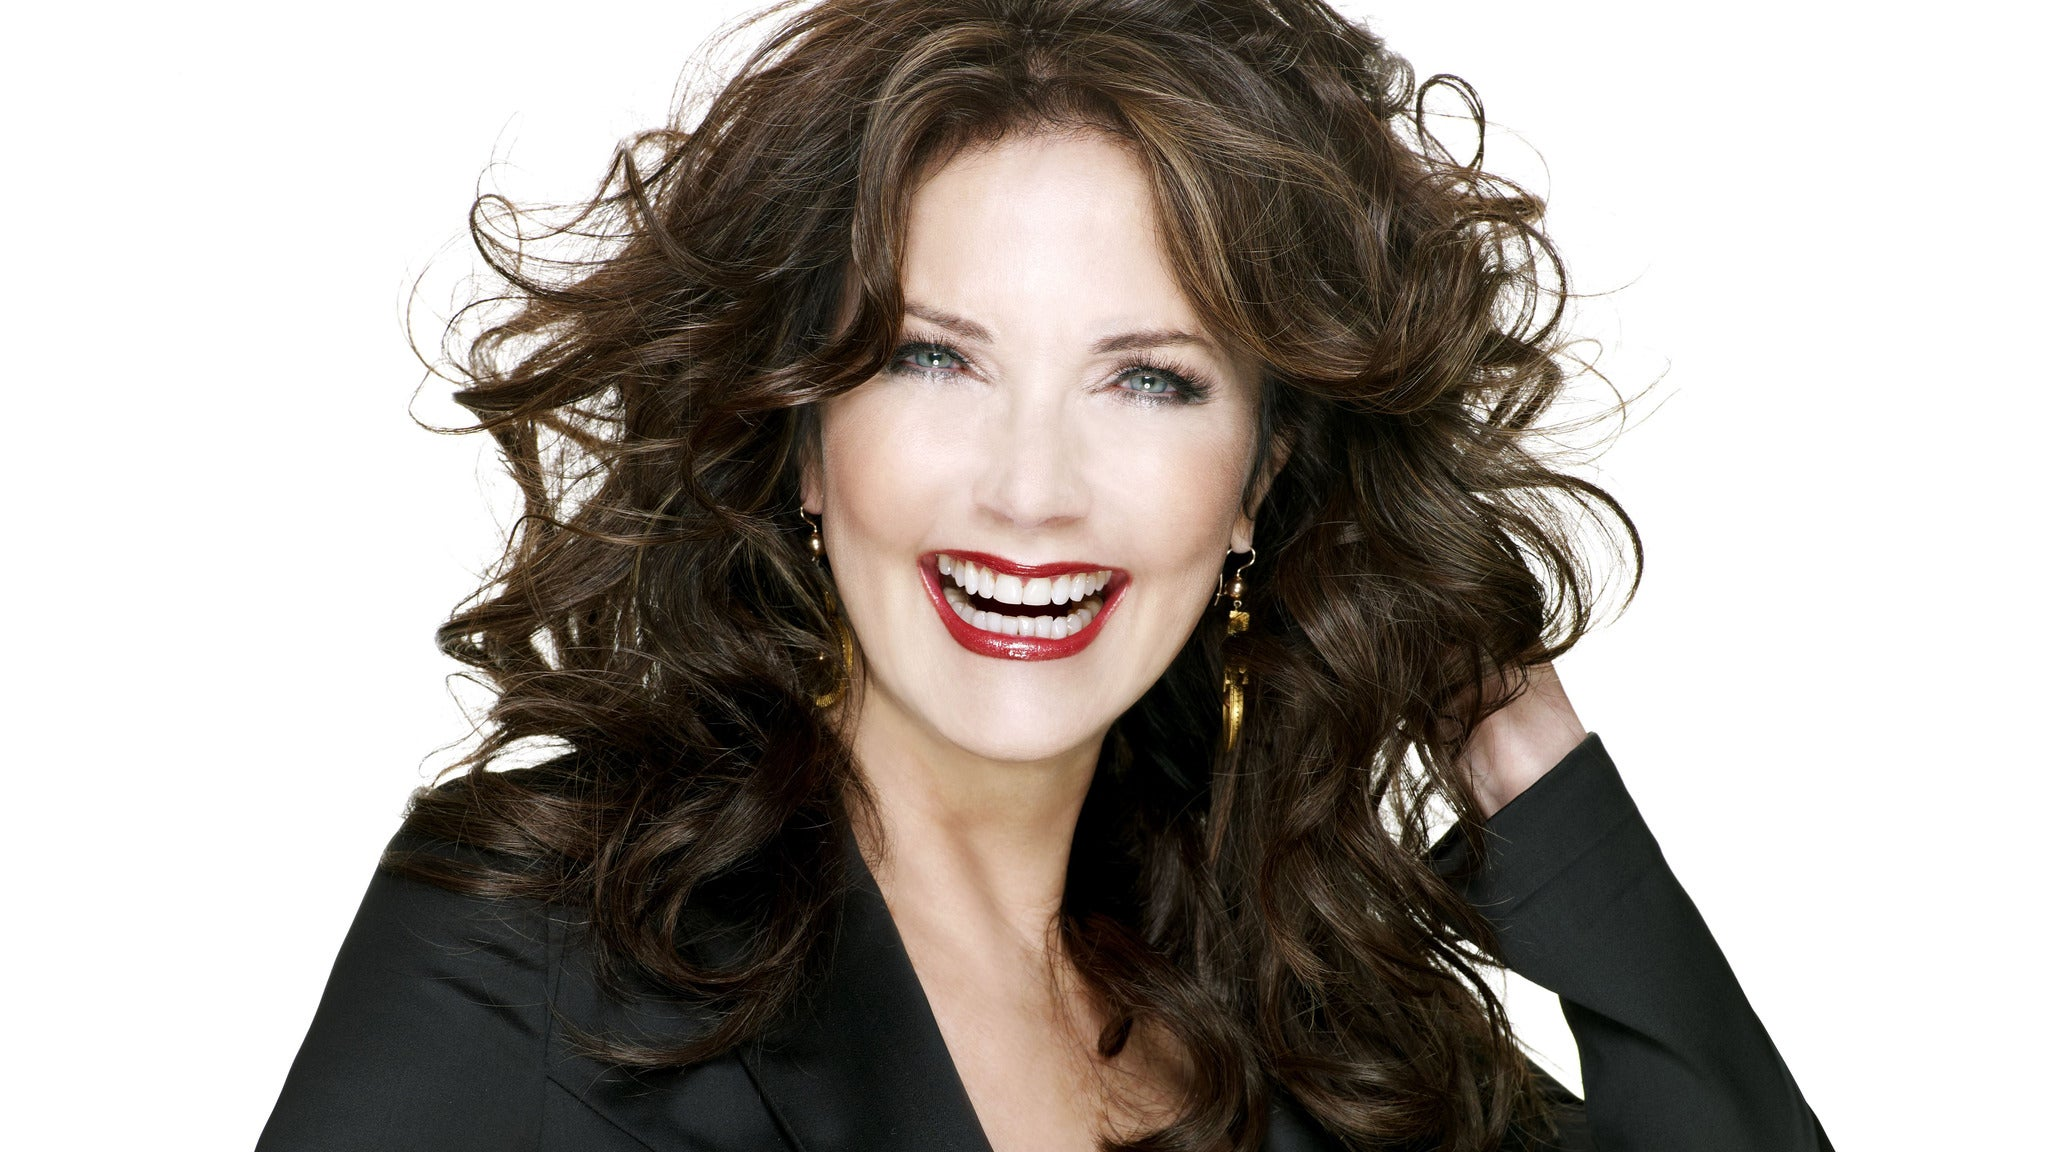 Lynda Carter at Seminole Center